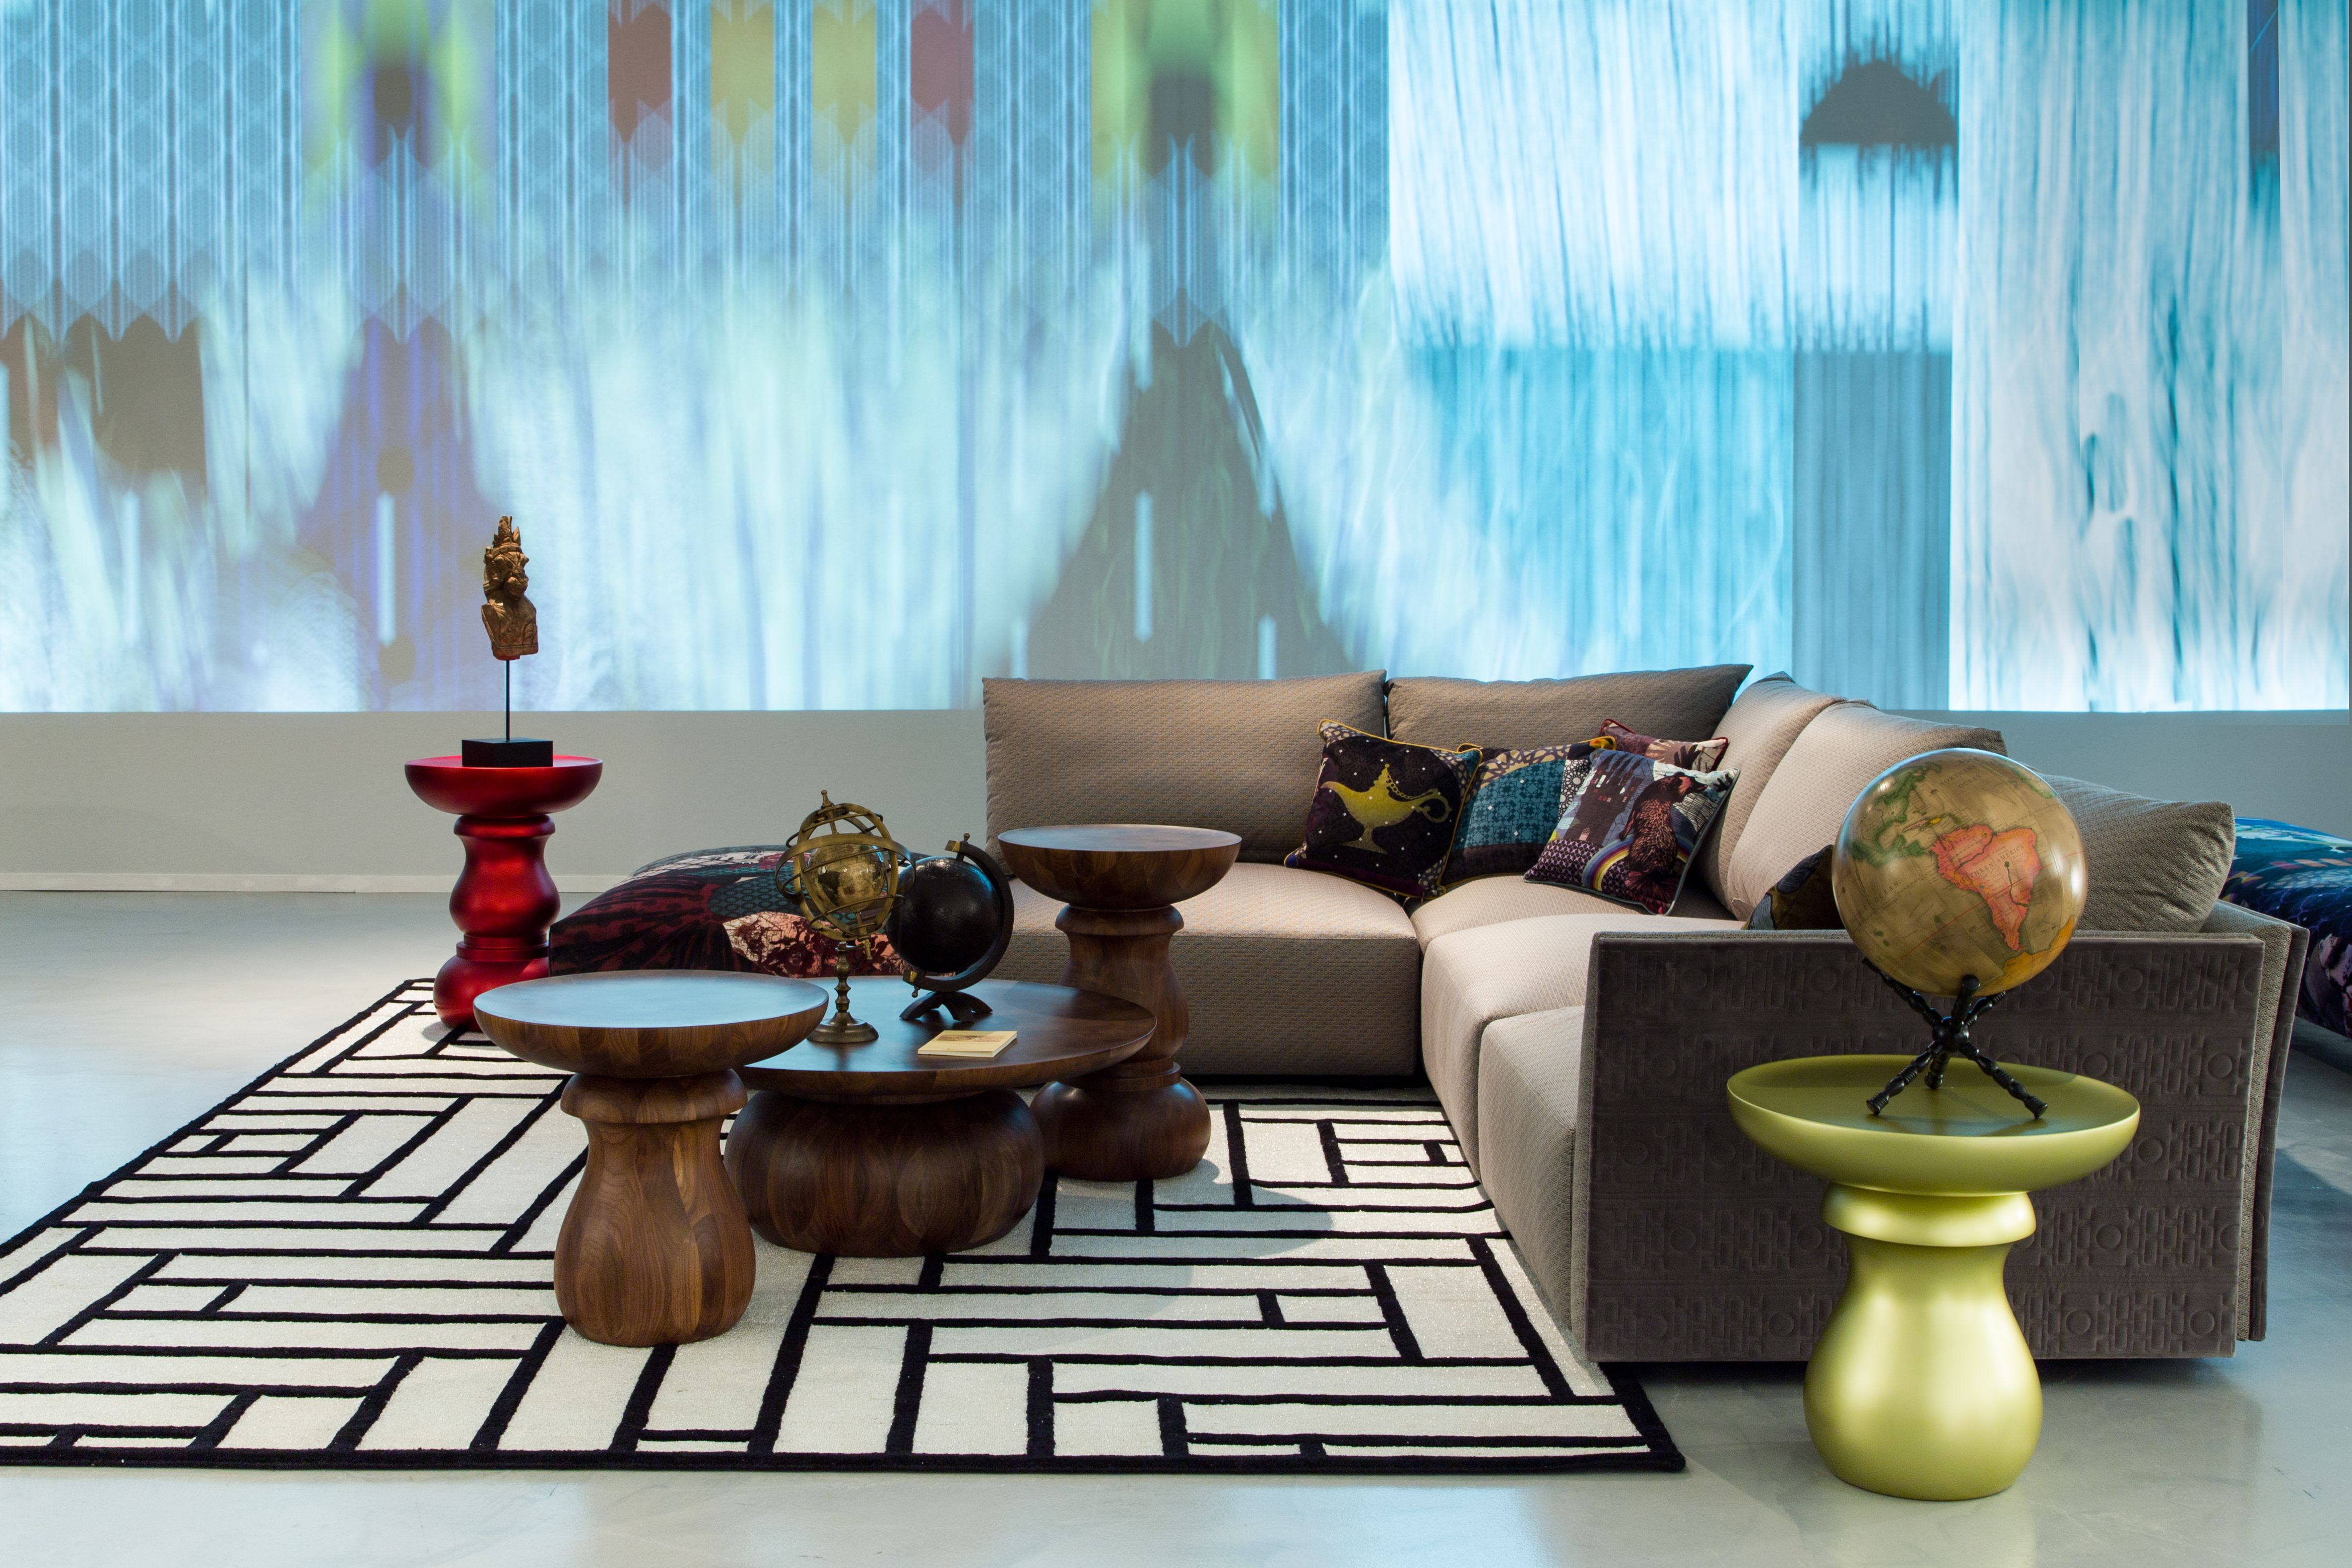 Roche Bobois Cerf Volant Sofa And Chess Tables Designed By Marcel